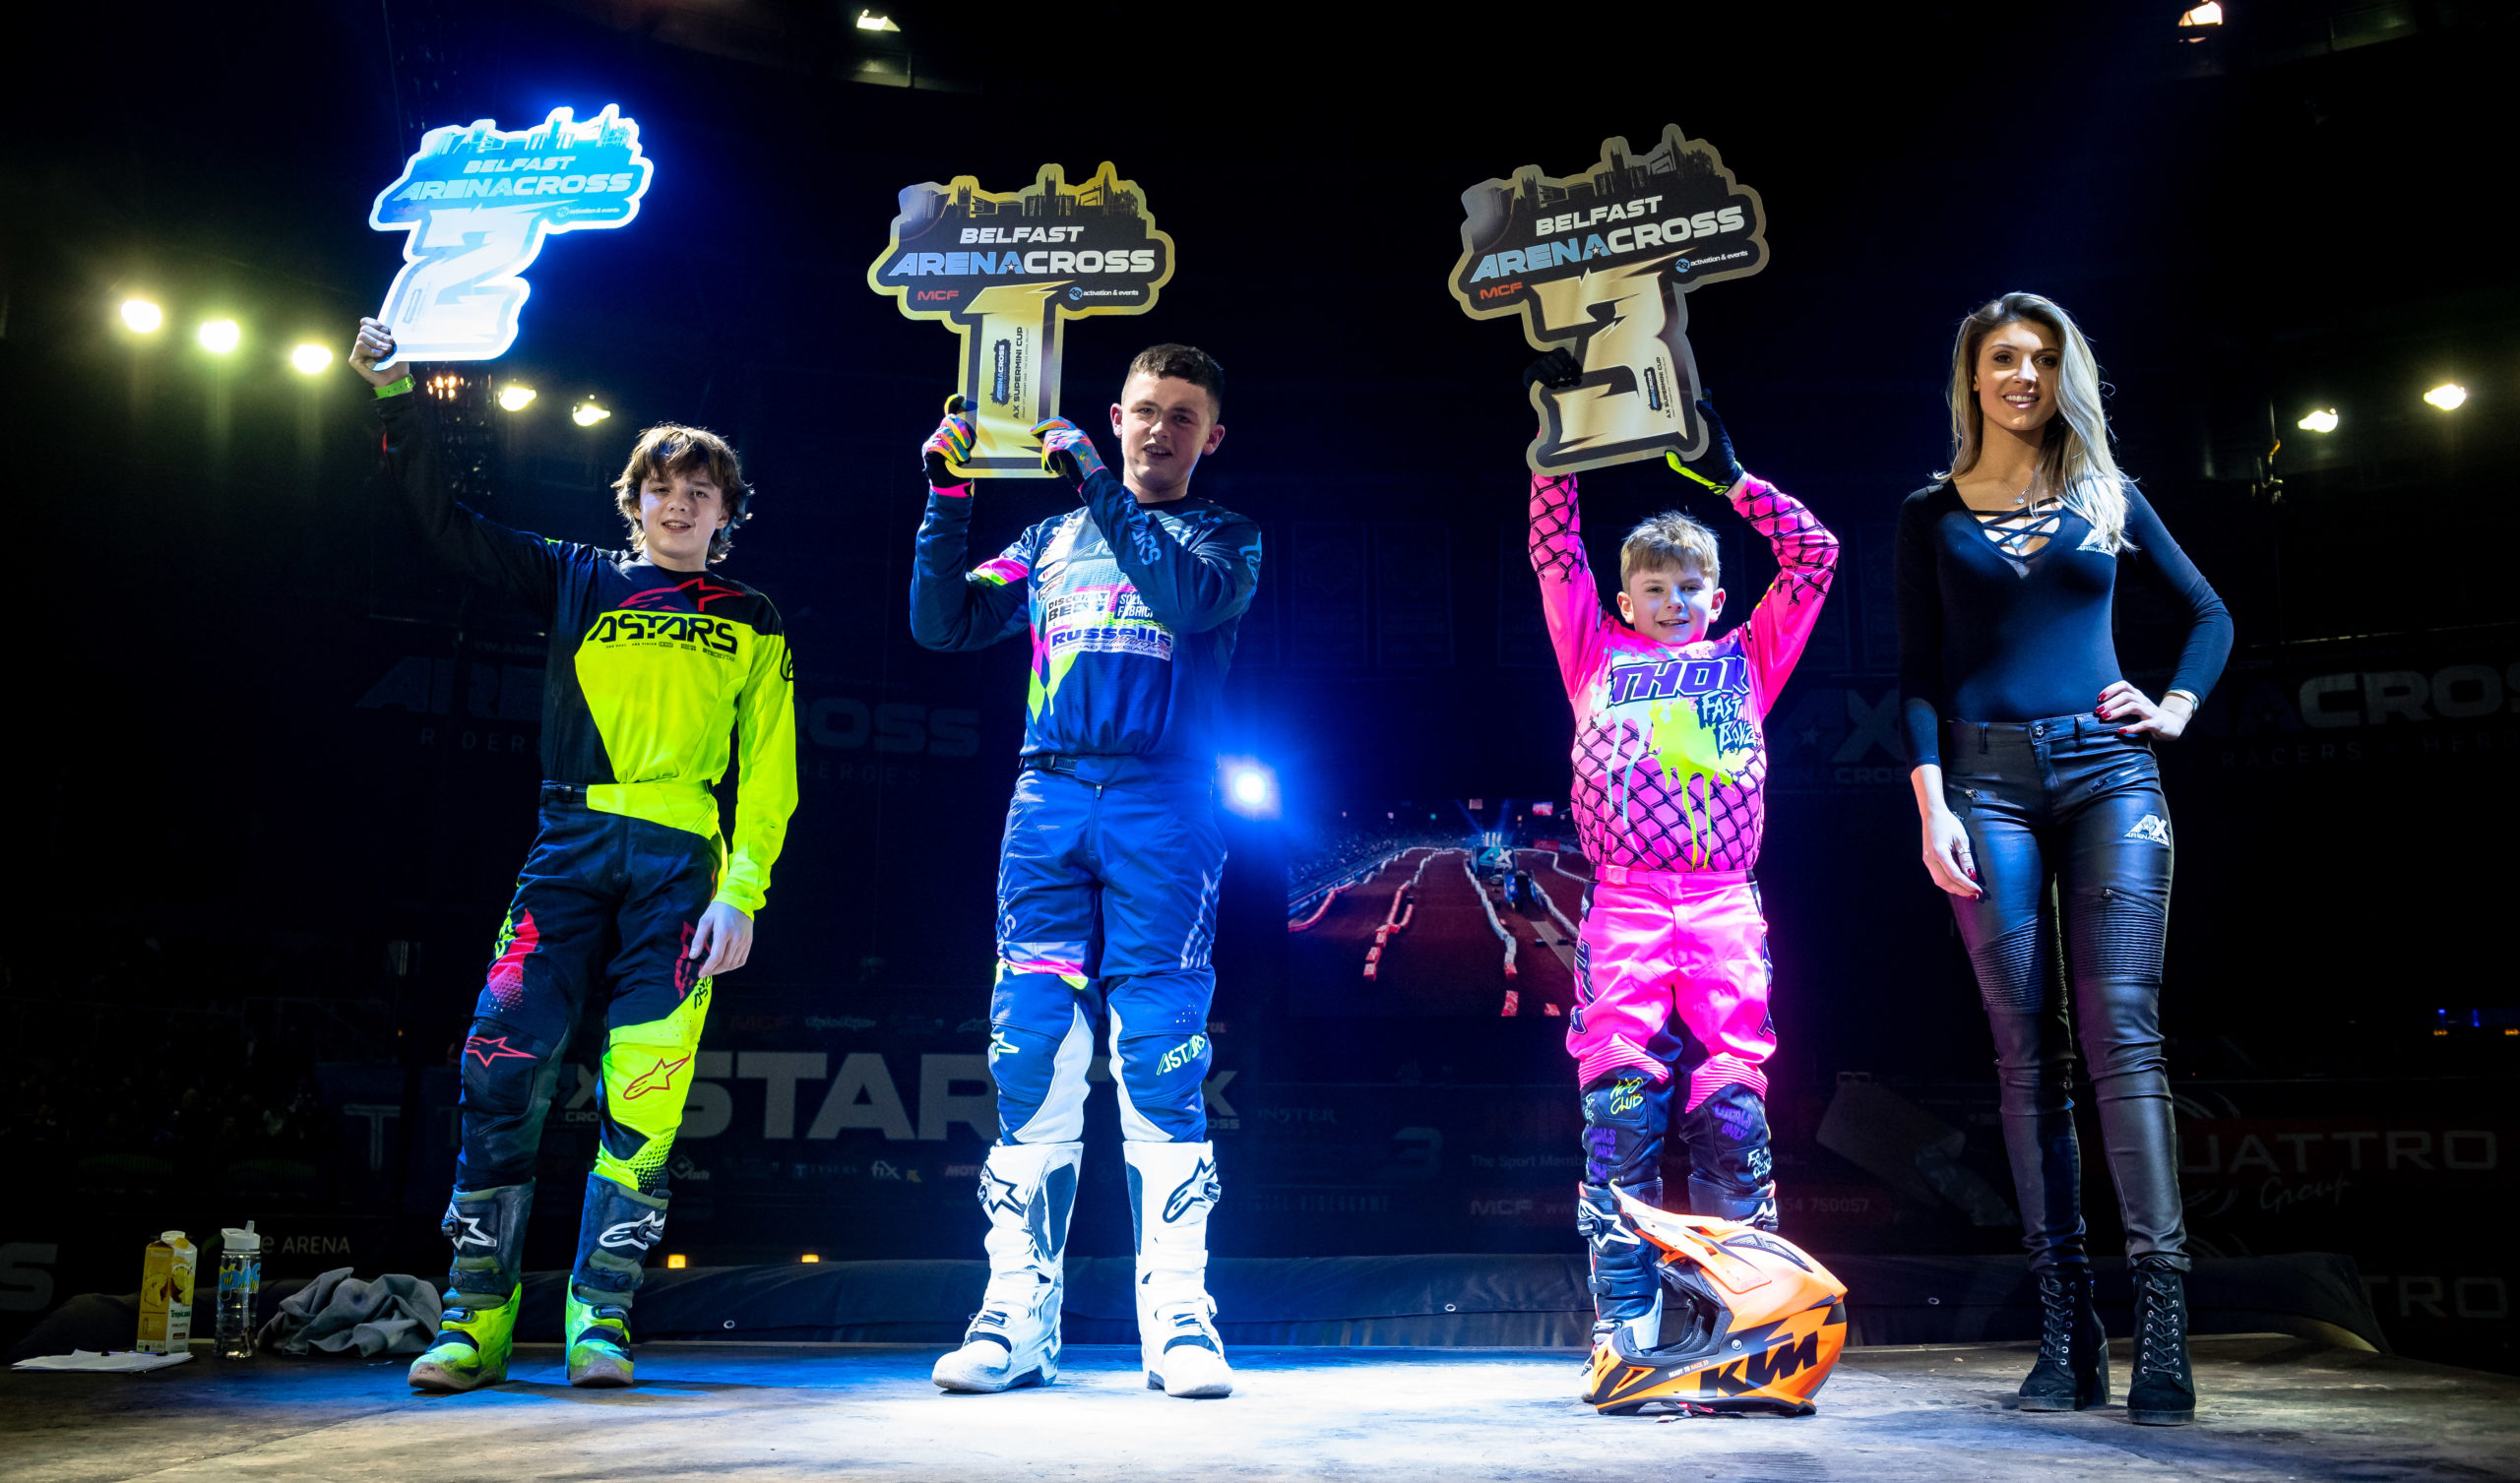 First battles of The 2020 Arenacross Tour